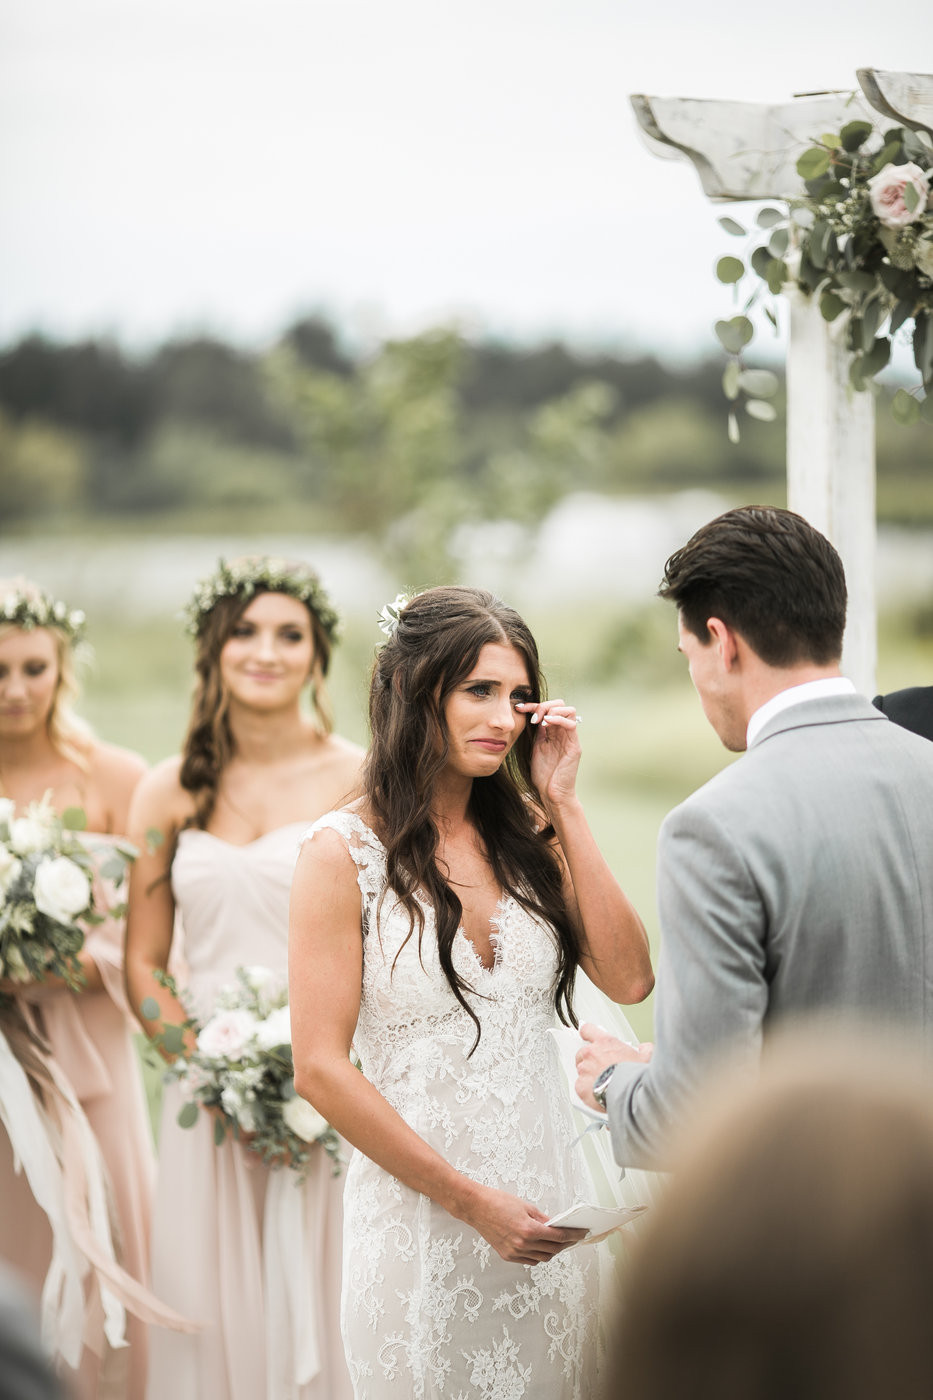 emotional bride crying tears of joy during vows at an outdoor wedding ceremony